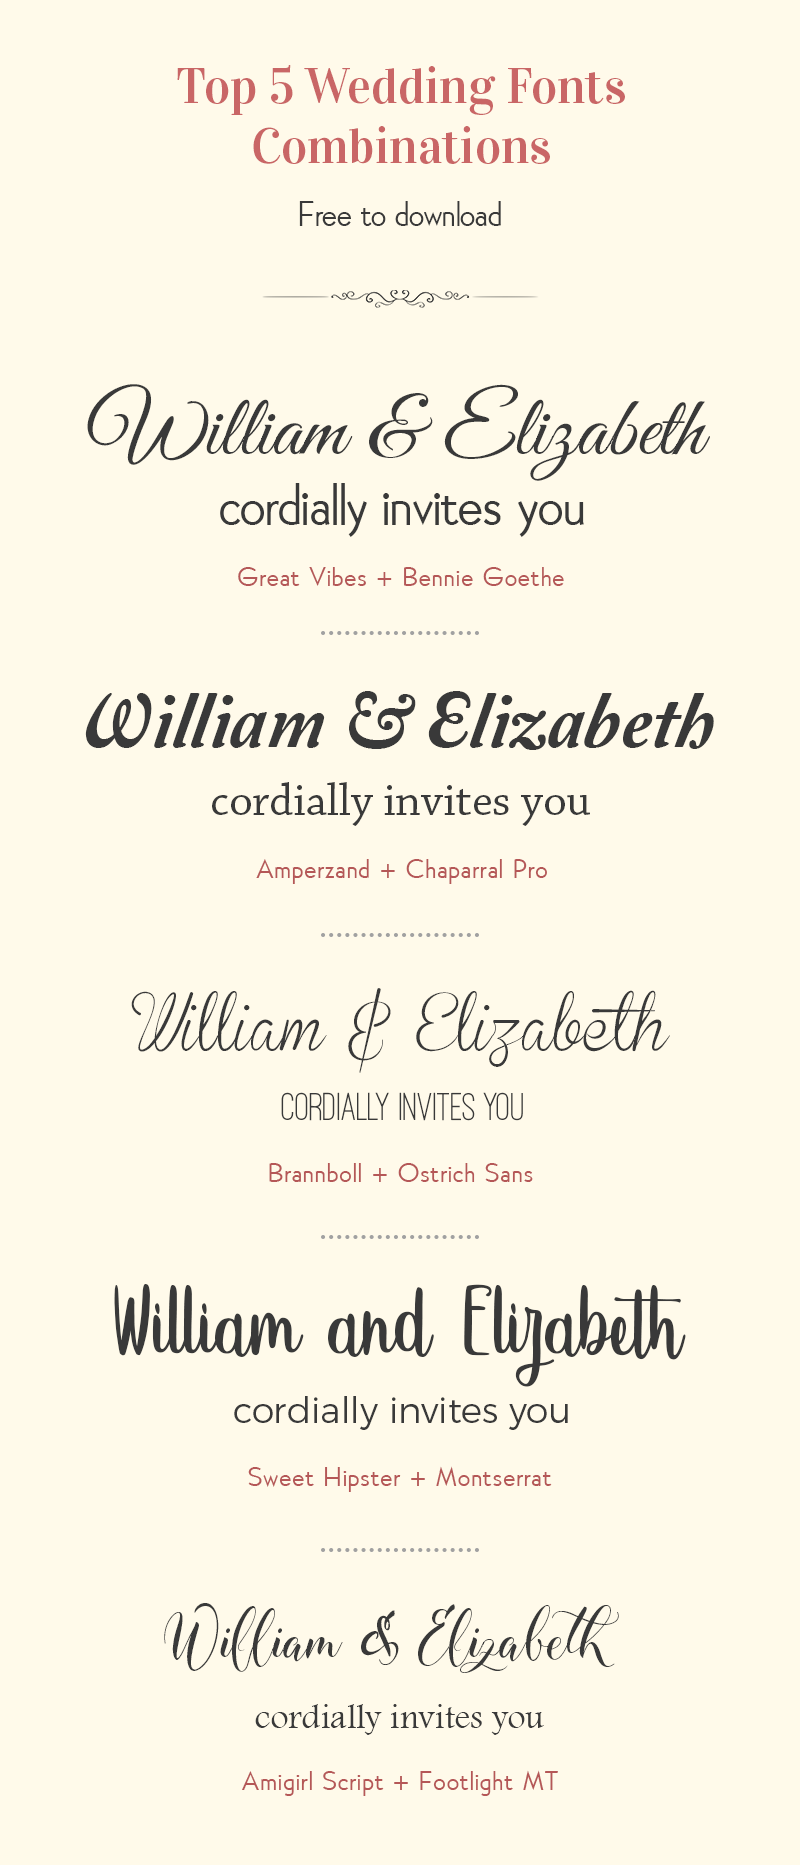 TOP 5 WEDDING FONT COMBINATIONS Font combinations